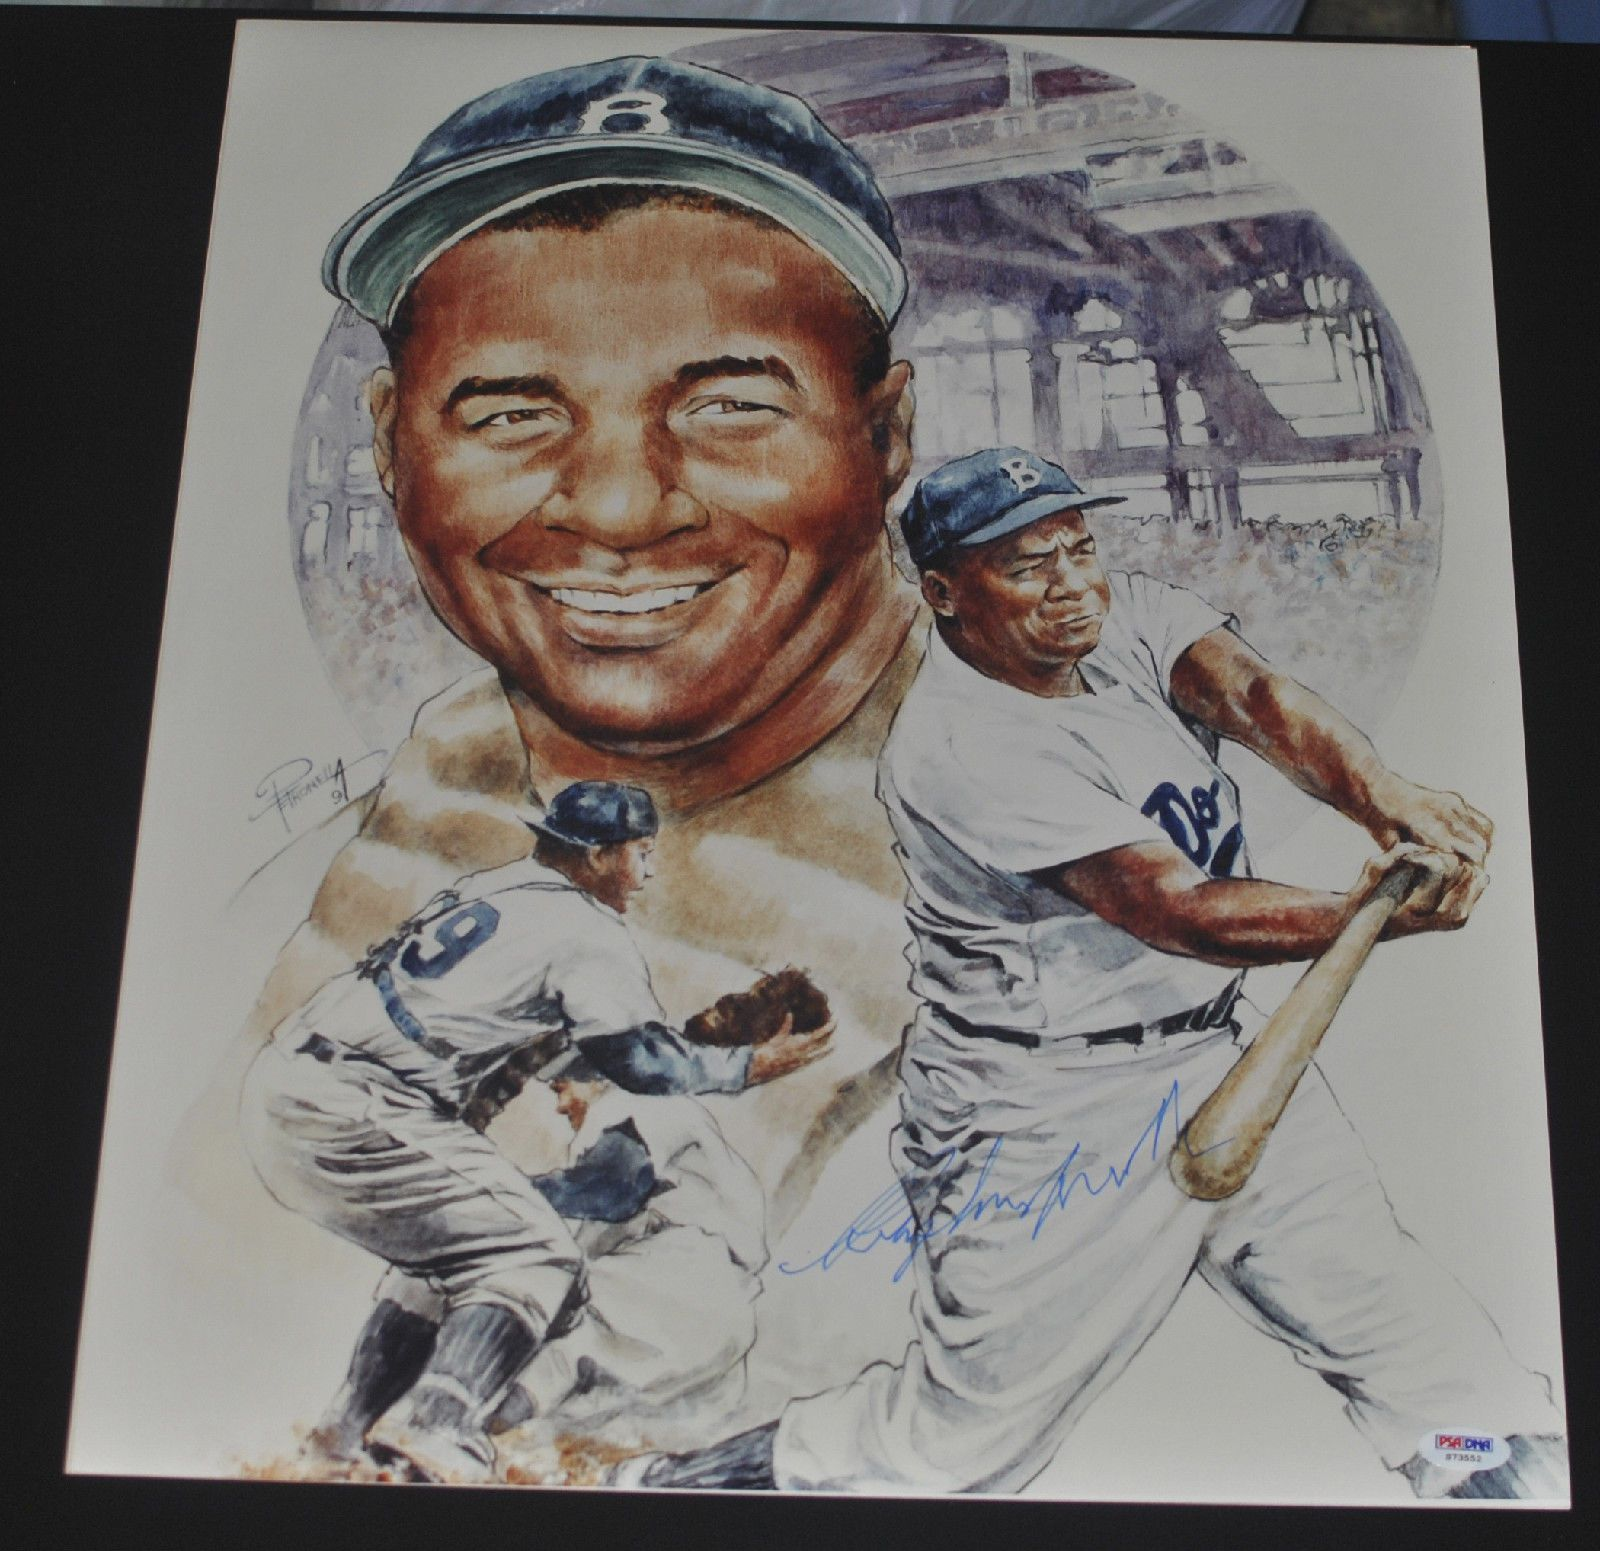 Roy Campanella Signed Post Accident Brooklyn Dodgers Lithograph PSA DNA S73552 | eBay #roycampanella #campanella #signedcard #autograph #postaccident #dodgers